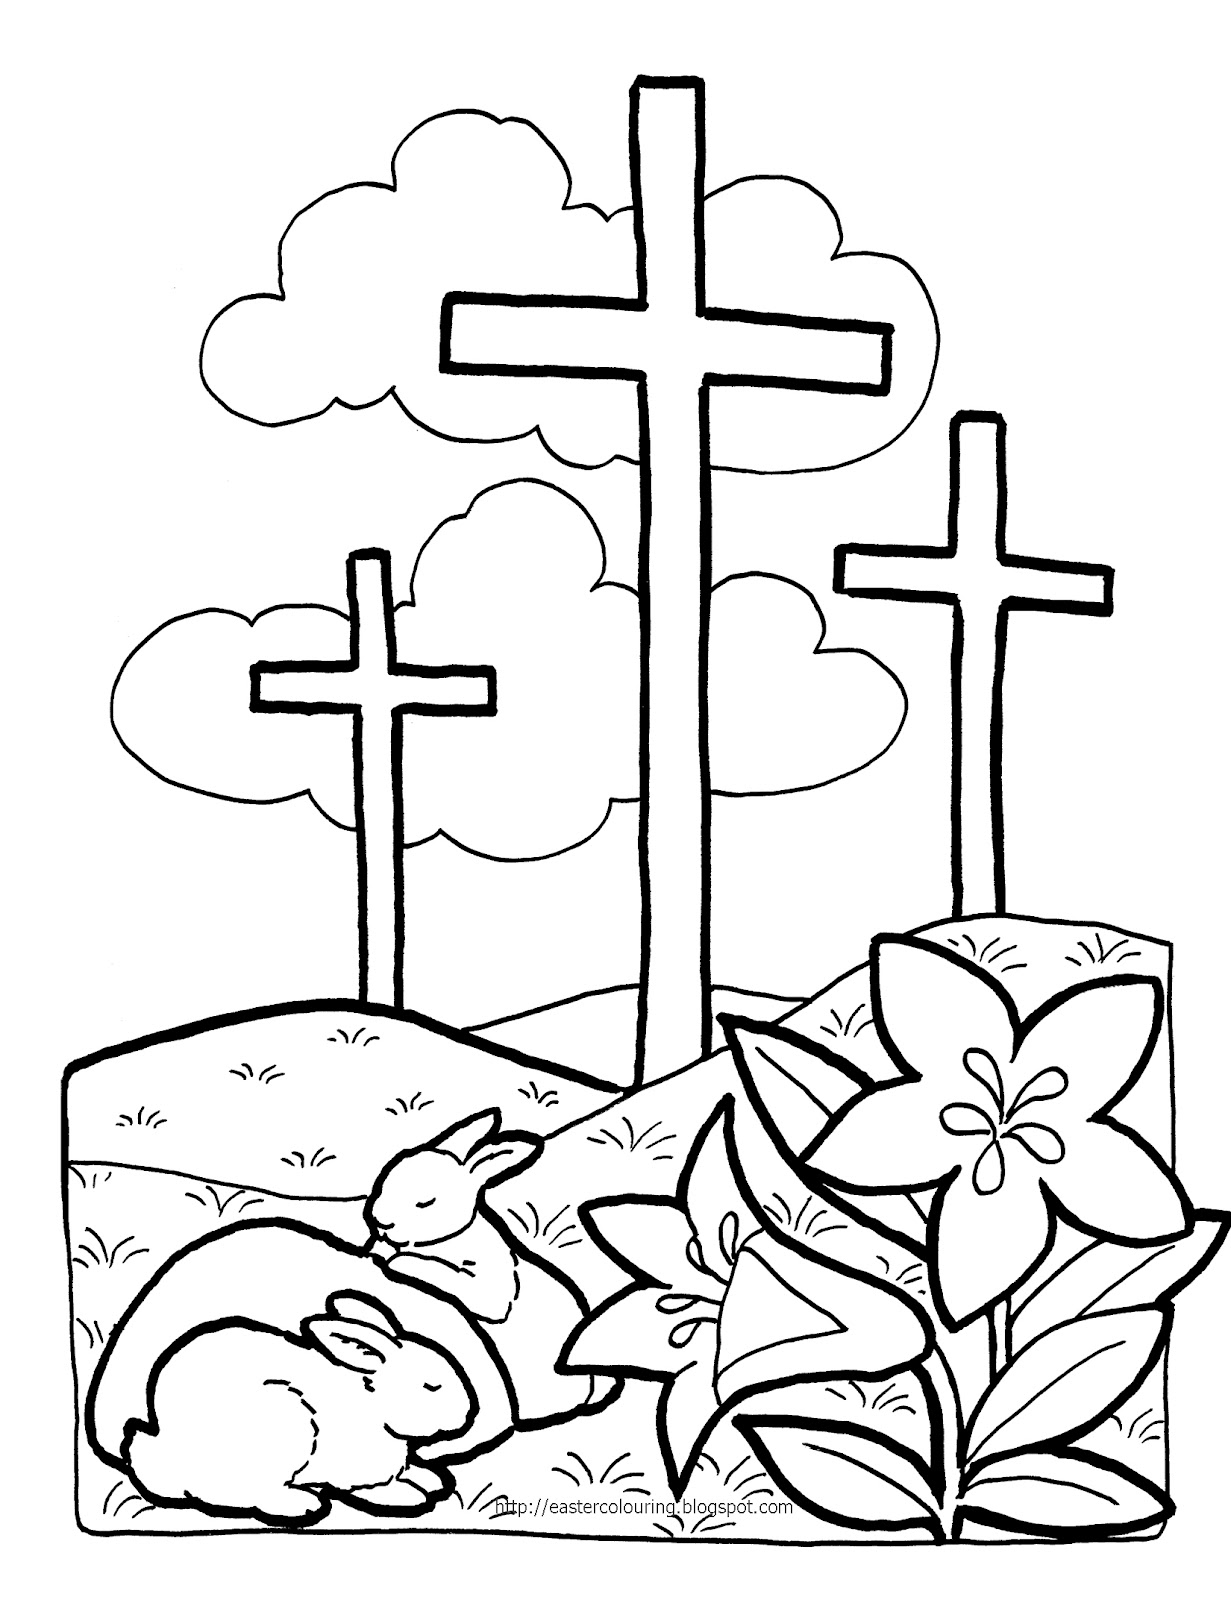 Easter Coloring Pages Rt 2